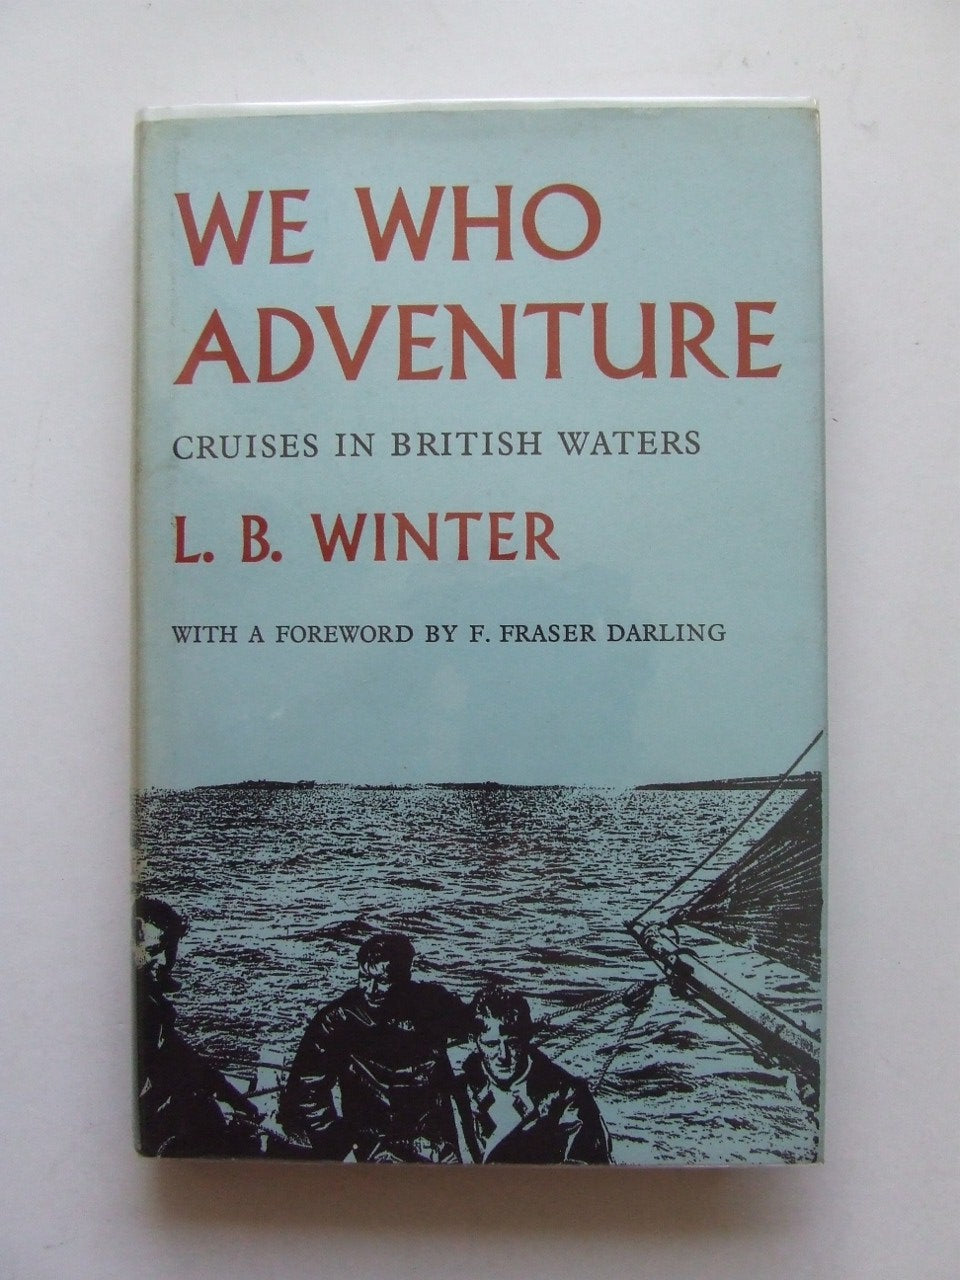 We Who Adventure, cruises in British Waters